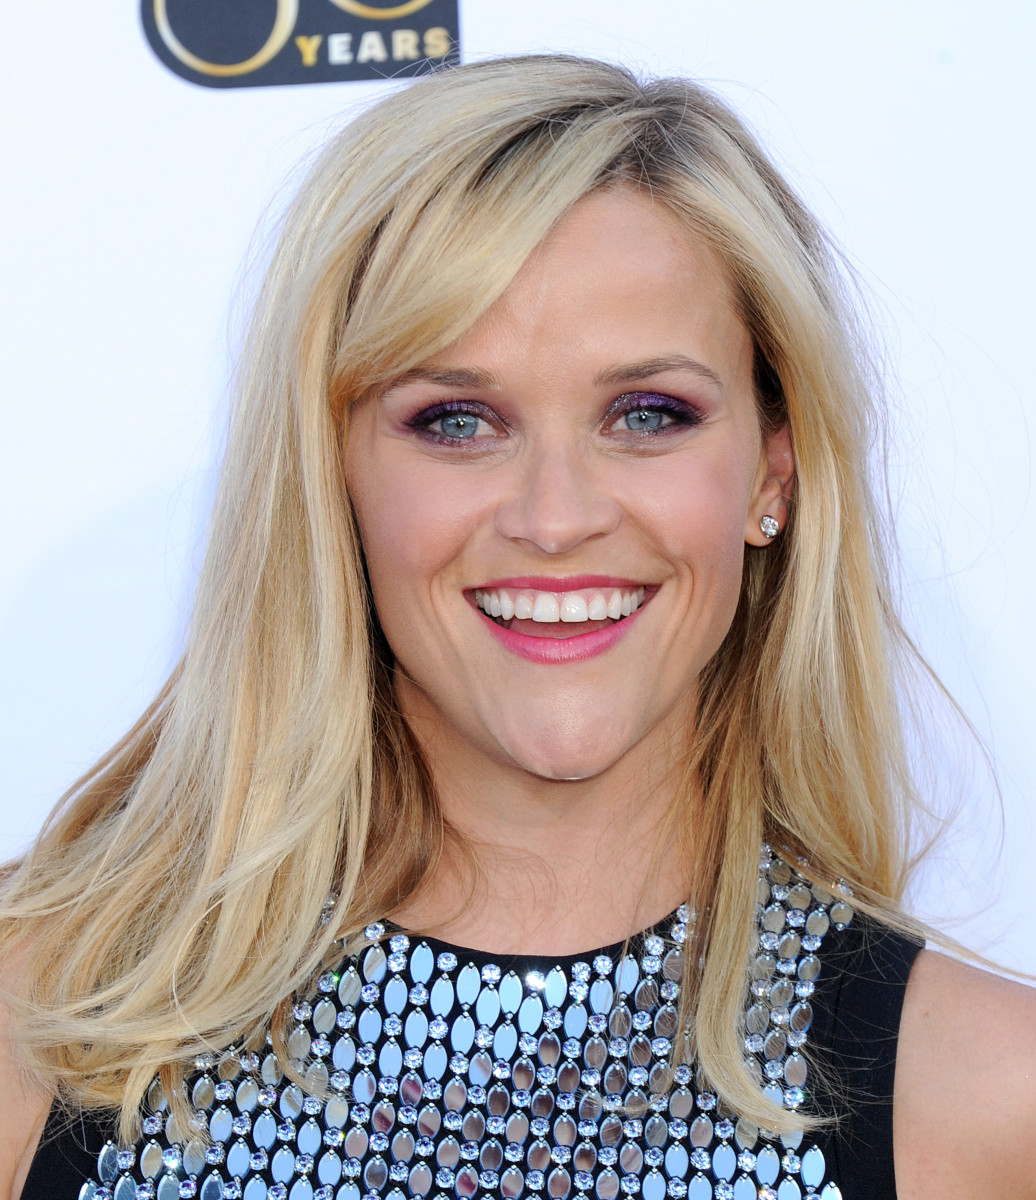 Reese Witherspoon, ACM Awards 2015